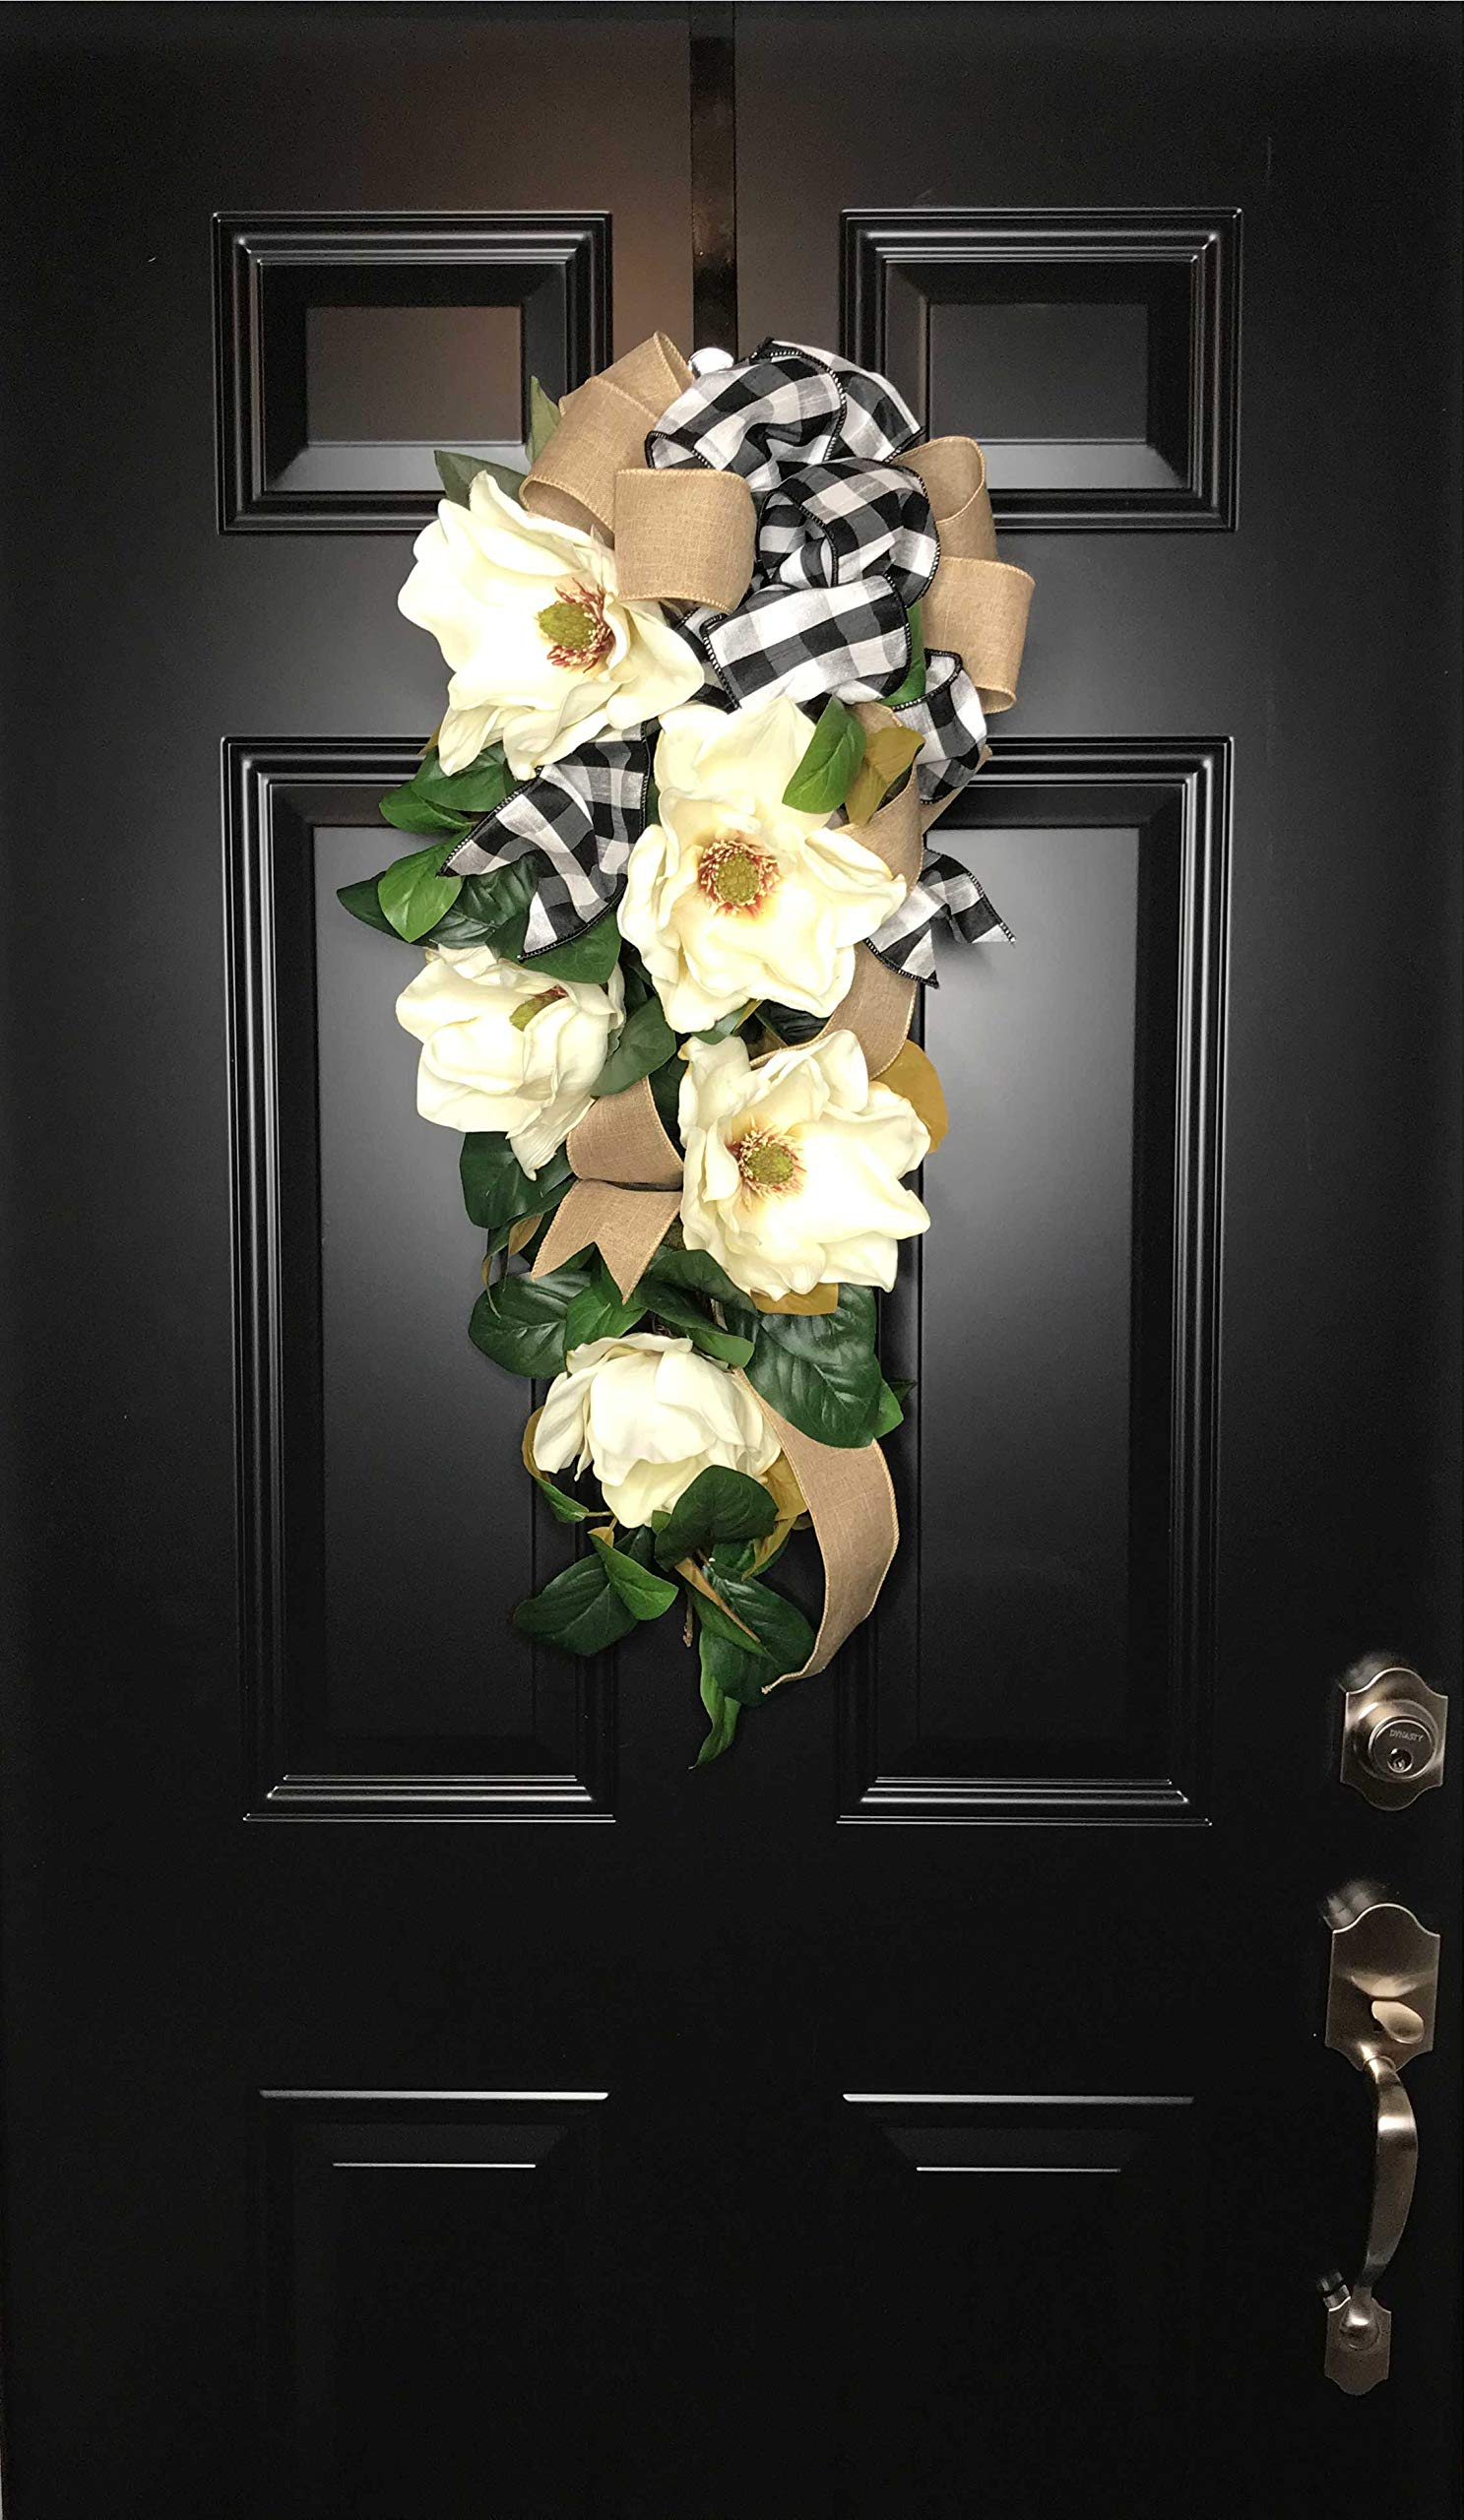 Large Southern Magnolia Teardrop Floral Swag Wreath w/Buffalo Plaid/Check Bow for Front Door Porch Indoor Wall Farmhouse Decor Spring Springtime Summer Summertime Year Round, Handmade, 30''L x 18'' W by Wreath and Vine, LLC (Image #4)